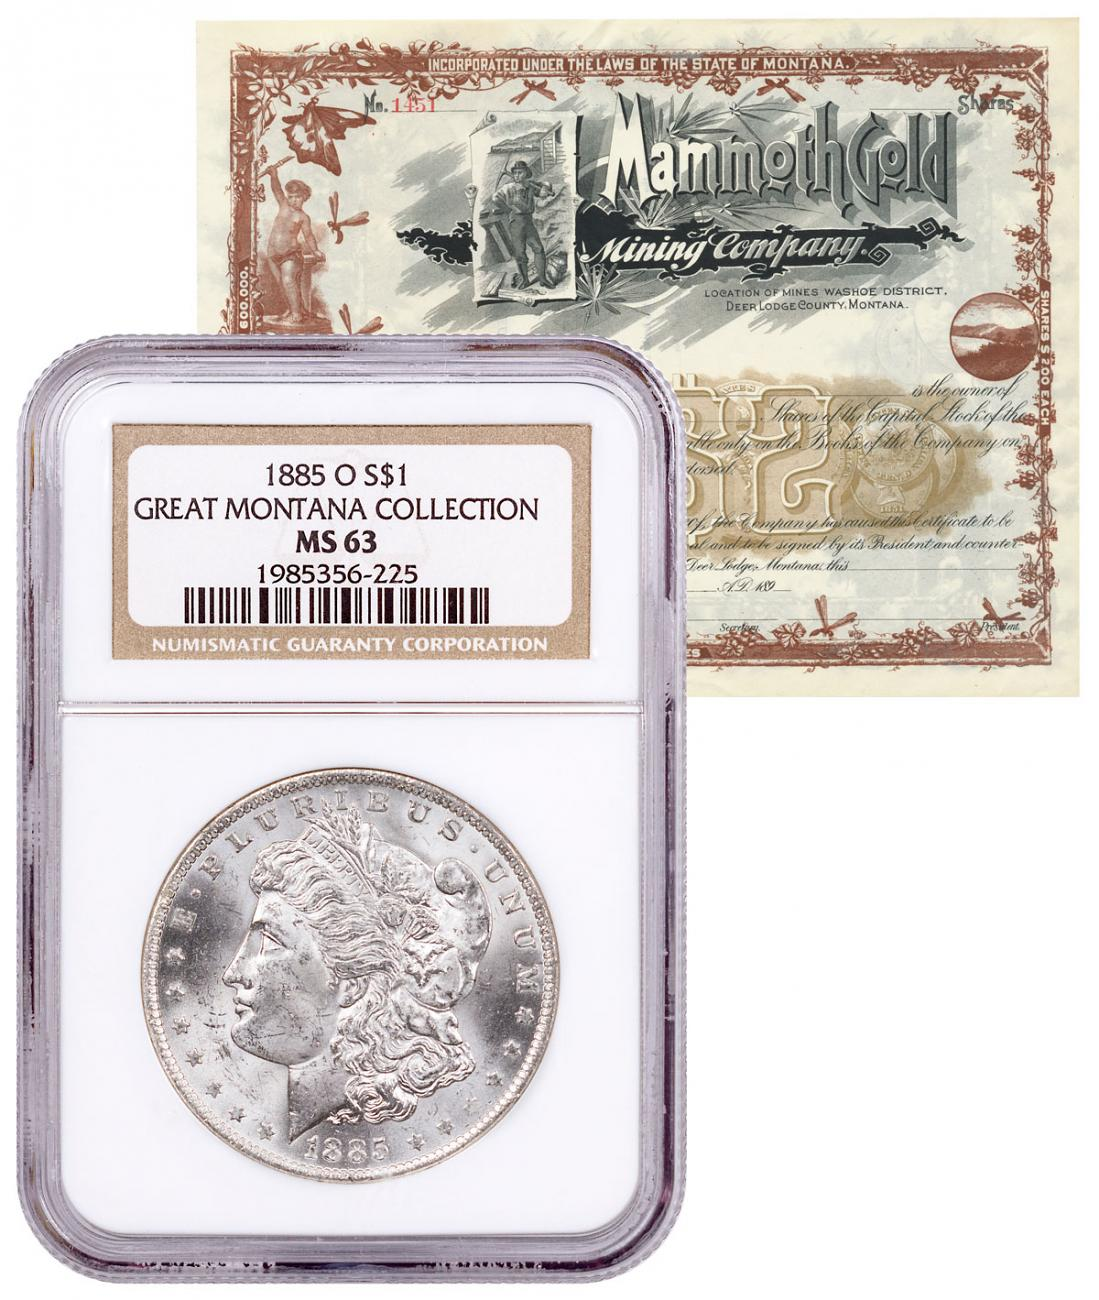 1885-O Silver Morgan Dollar NGC MS63 Mammoth Mining Stock Certificate